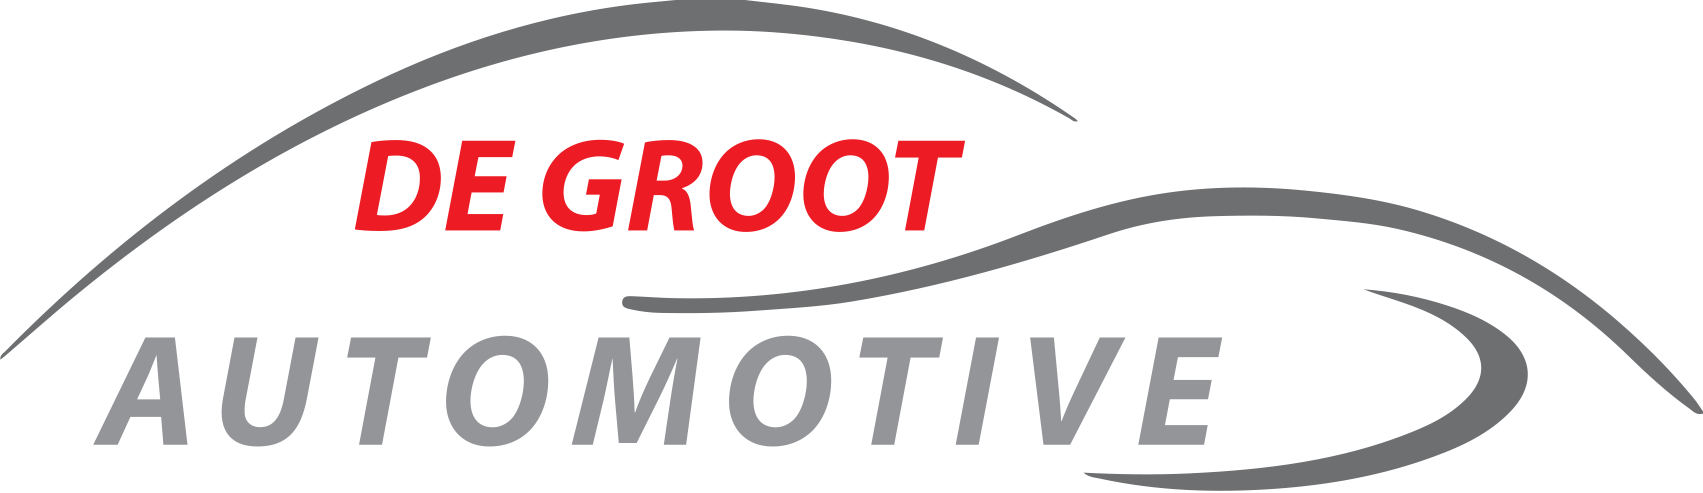 De Groot Automotive logo